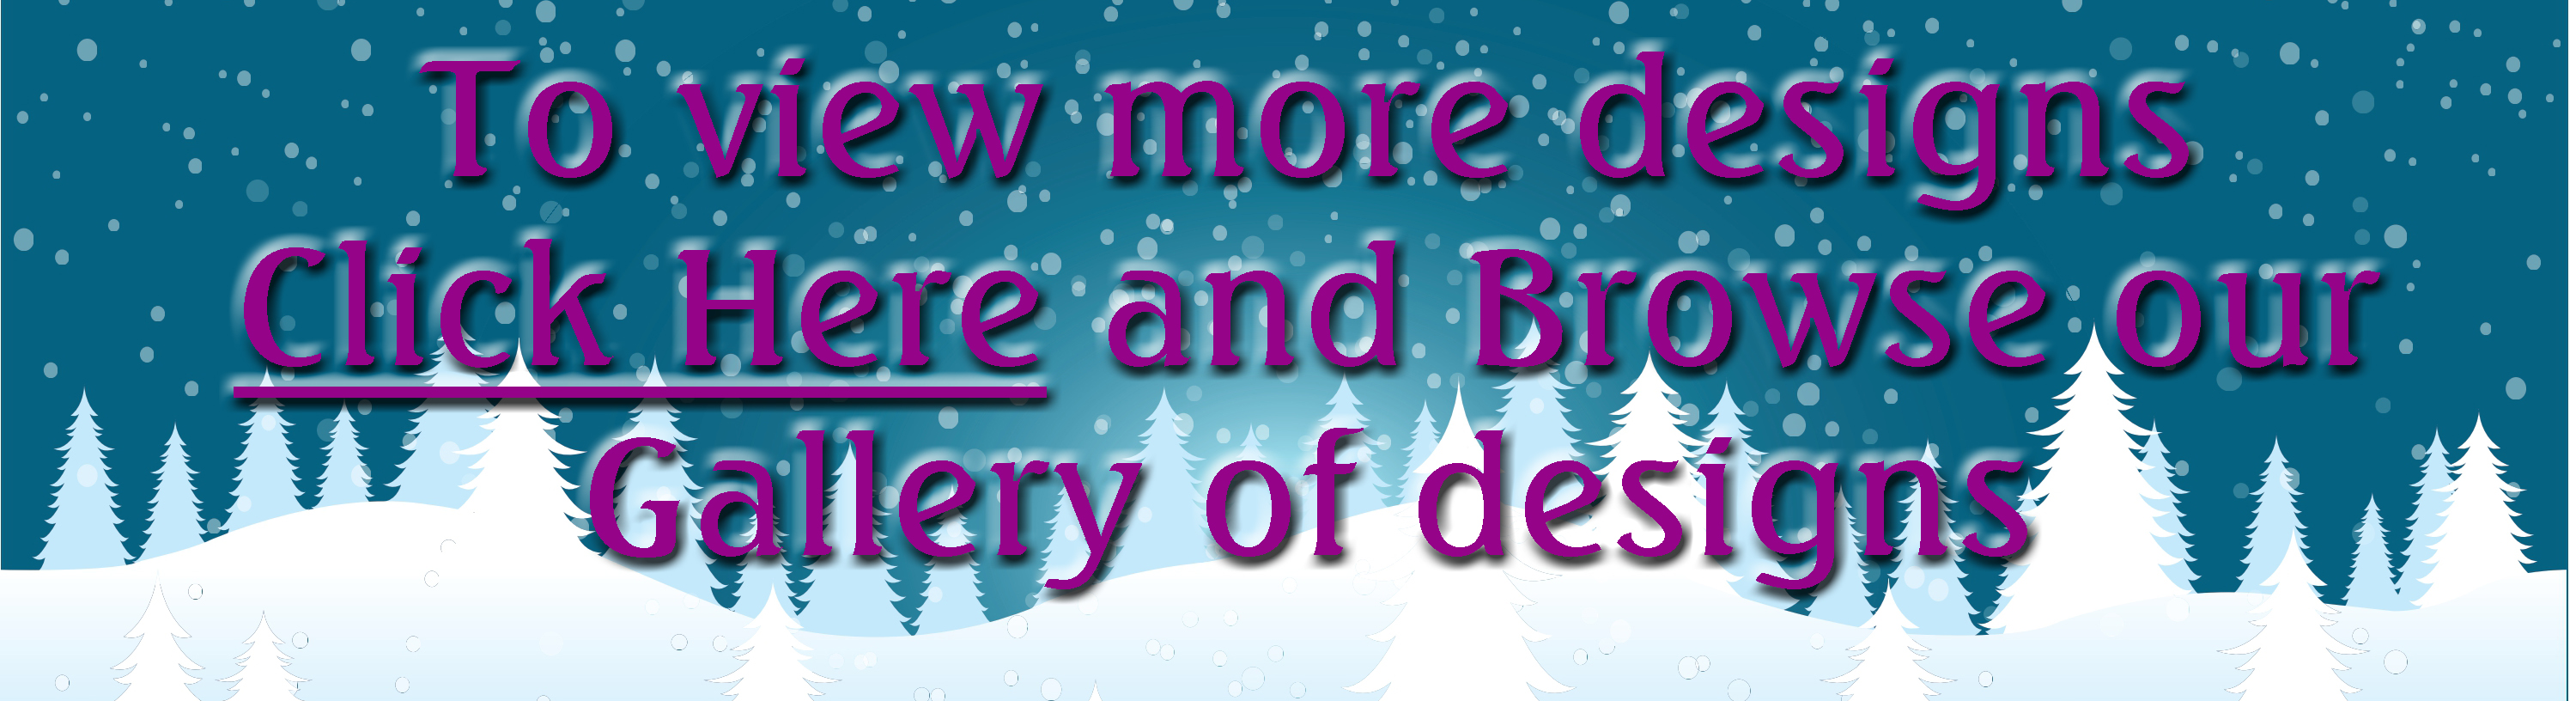 snow-banner-more-designs.jpg